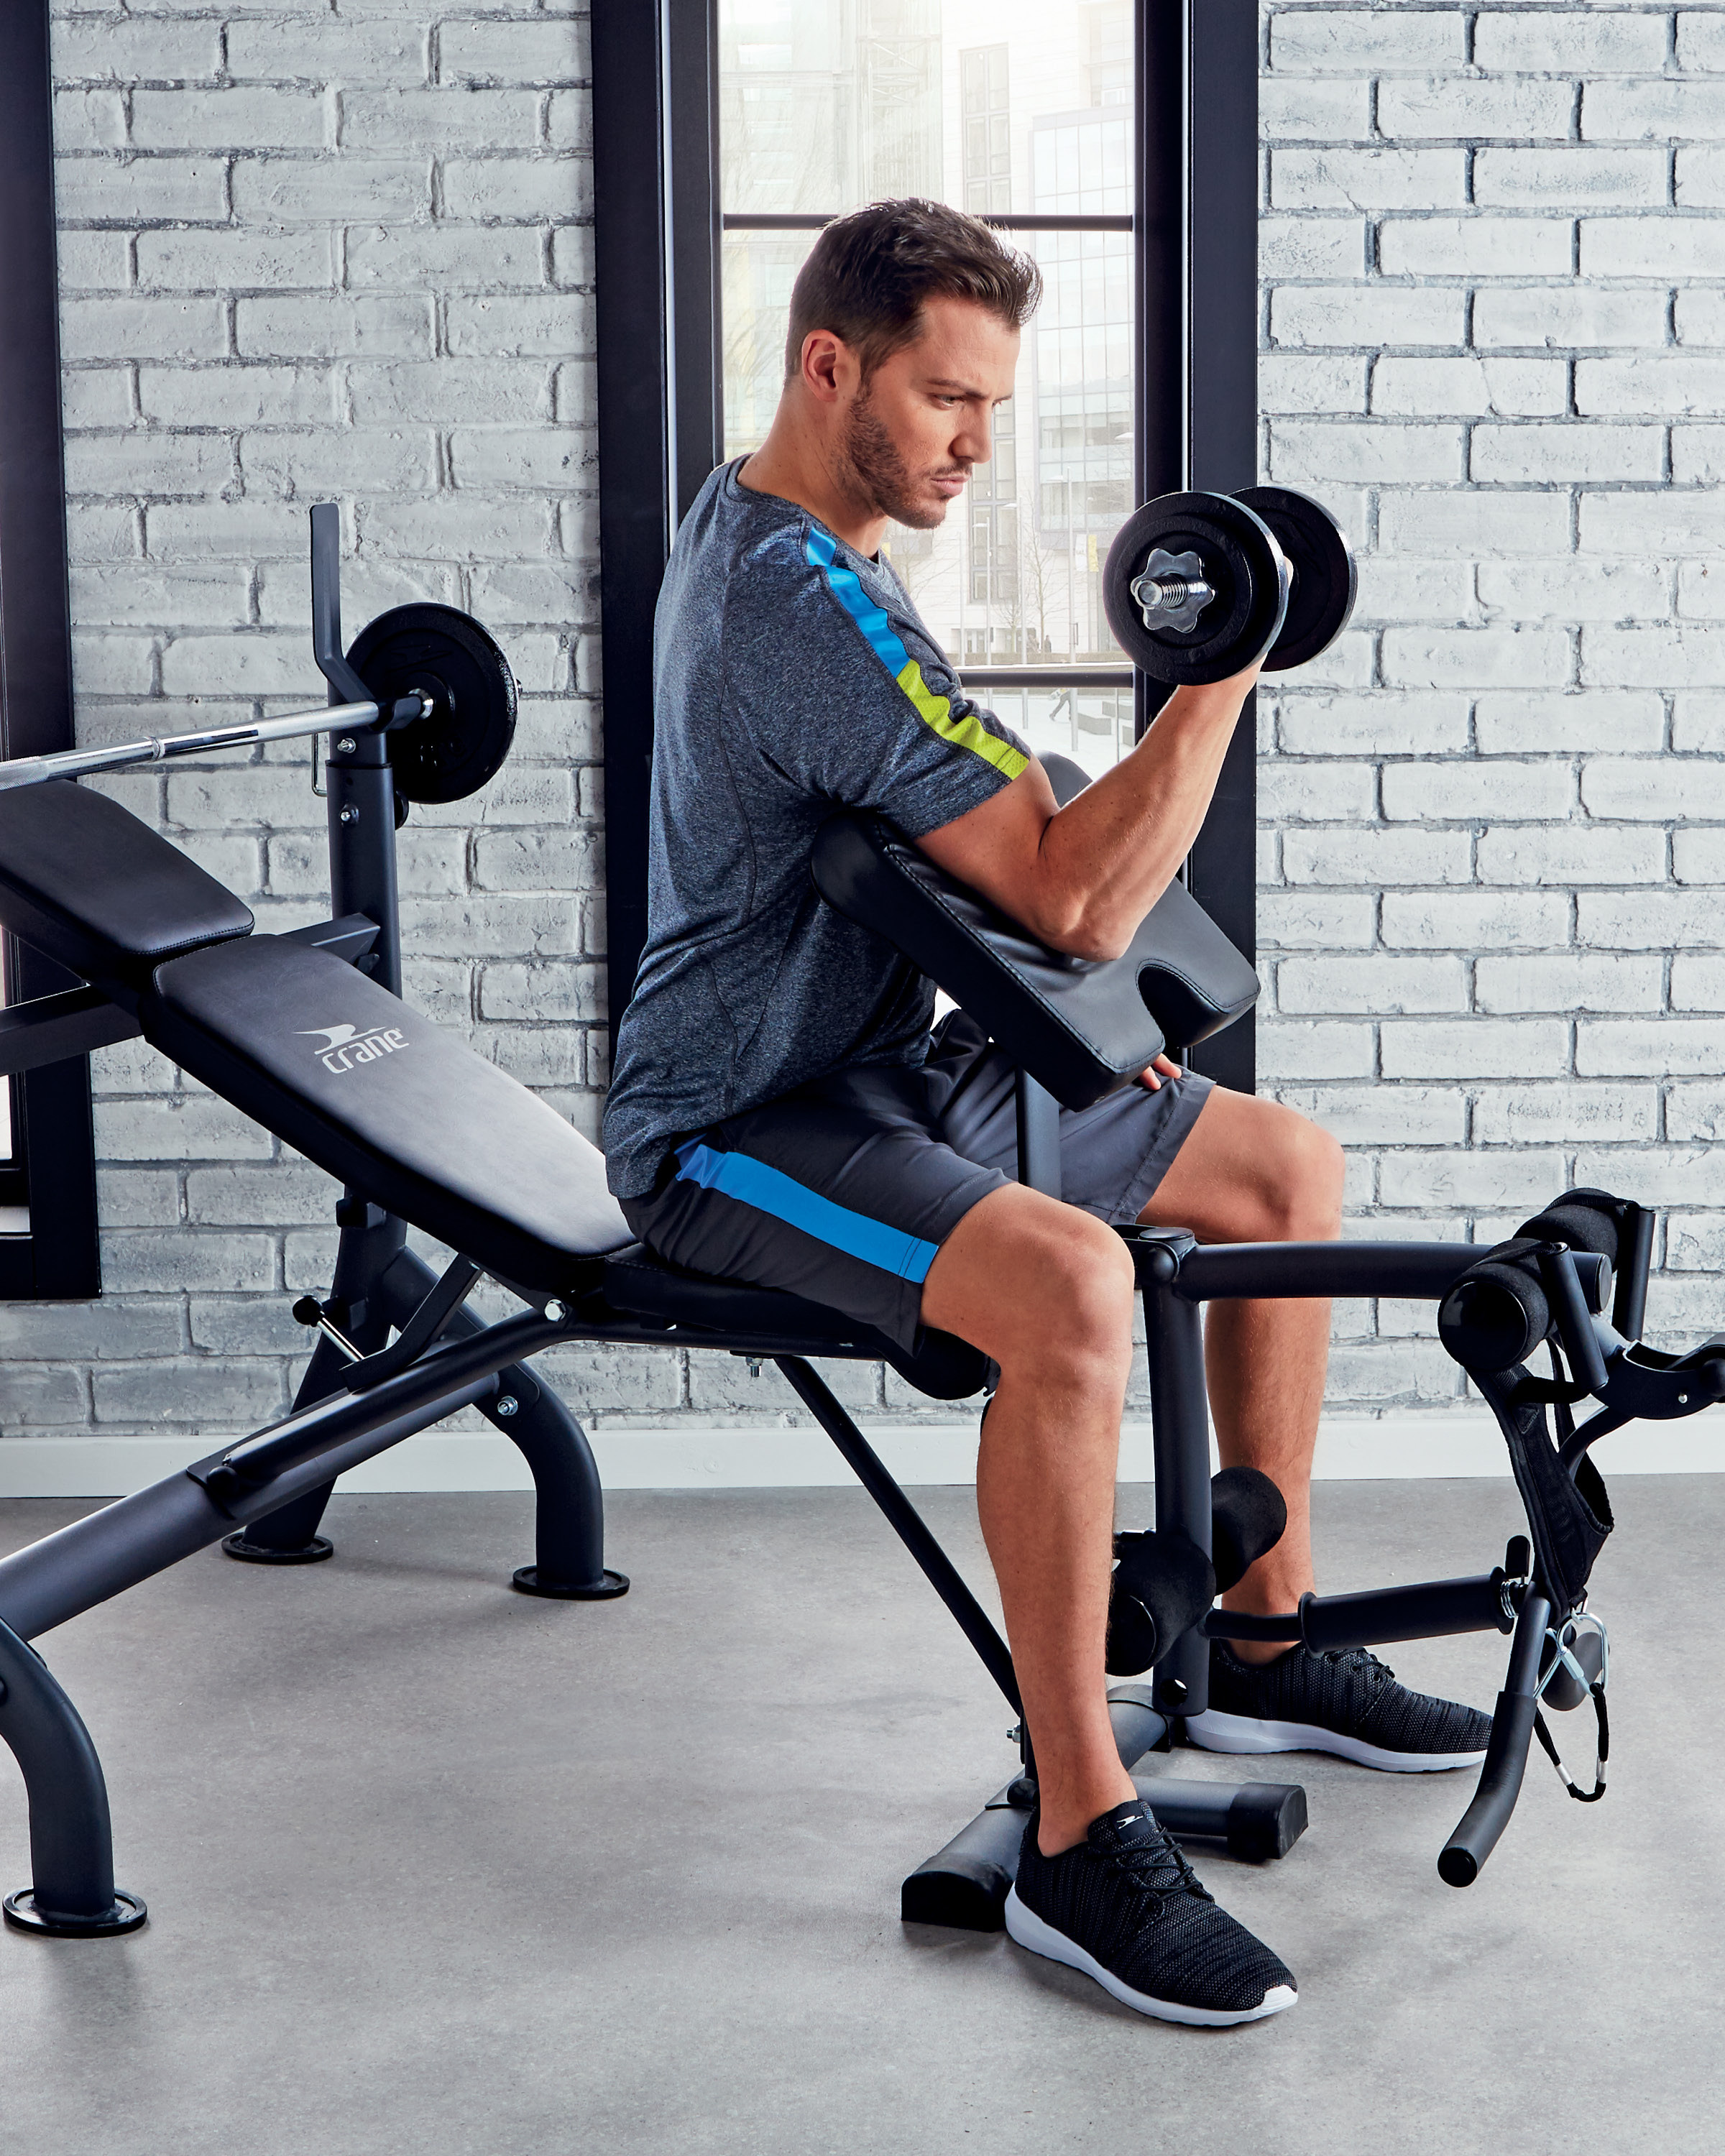 https://cdn.aldi-digital.co.uk/Weight-Lifting-Bench-B.jpg?o=24PqdCdAfosDQCQESrKXA7PhqqQj&V=1xzB